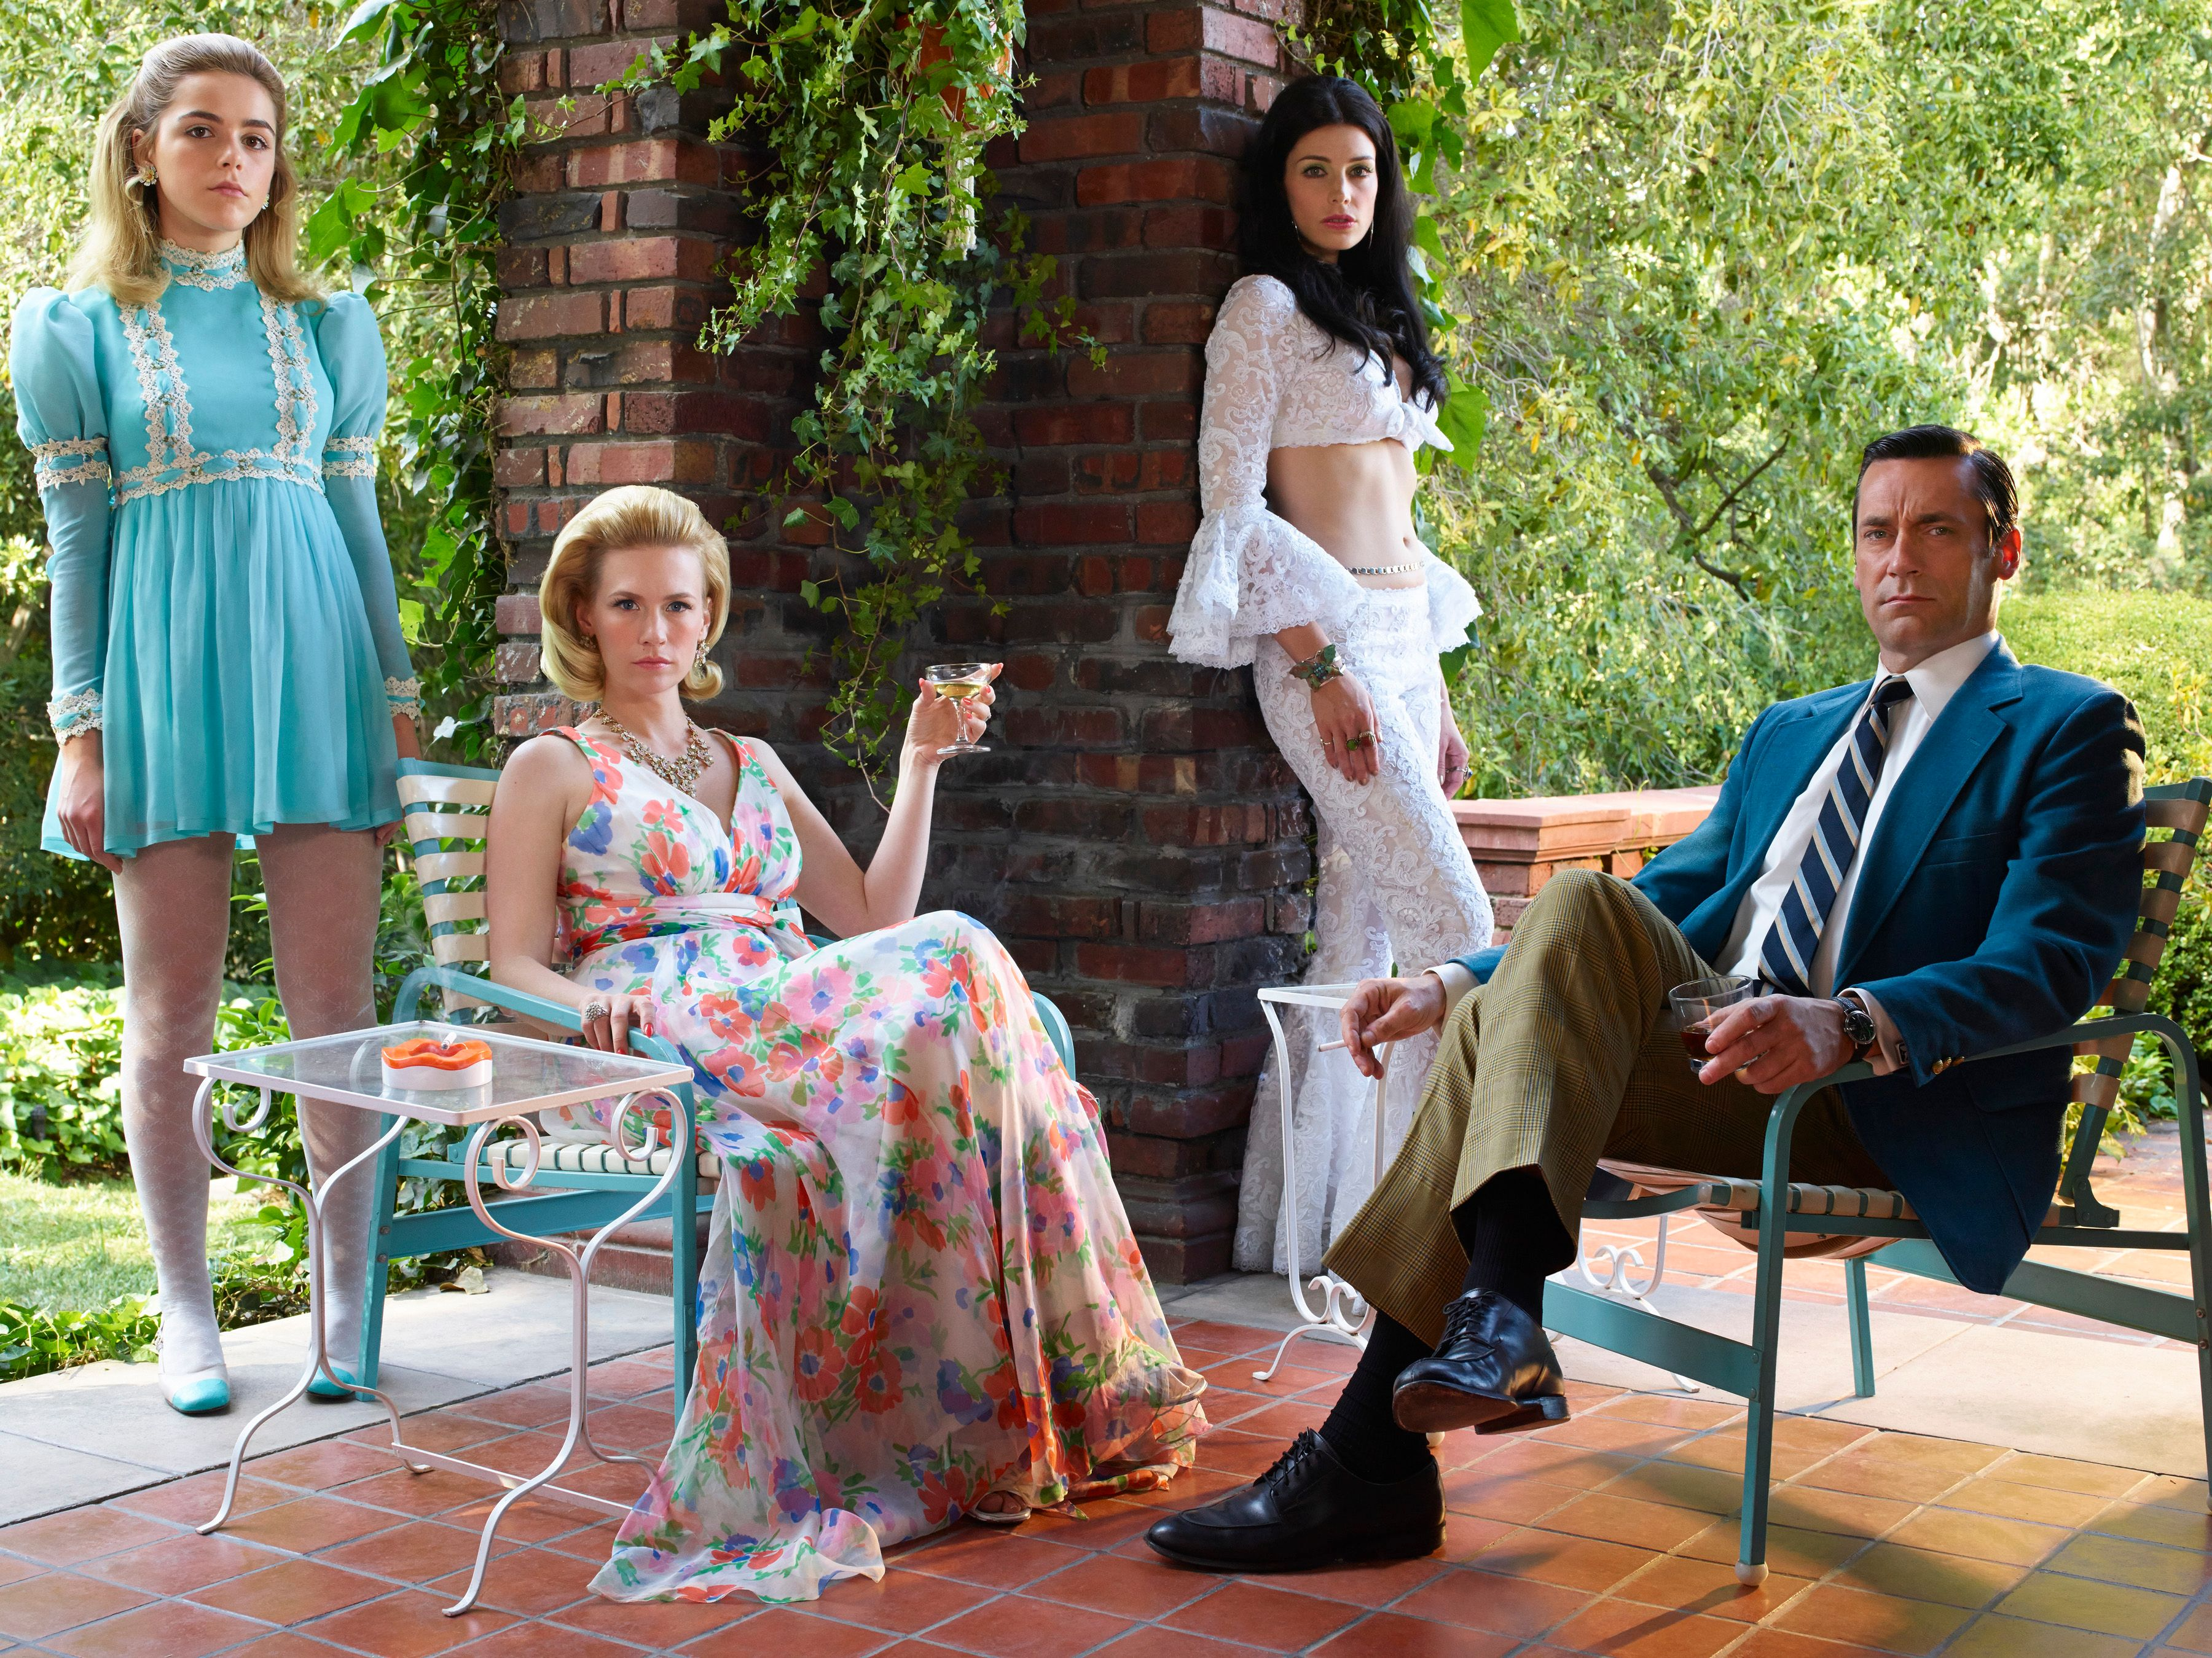 mad men u0027s final season cast images are full of sports coats and